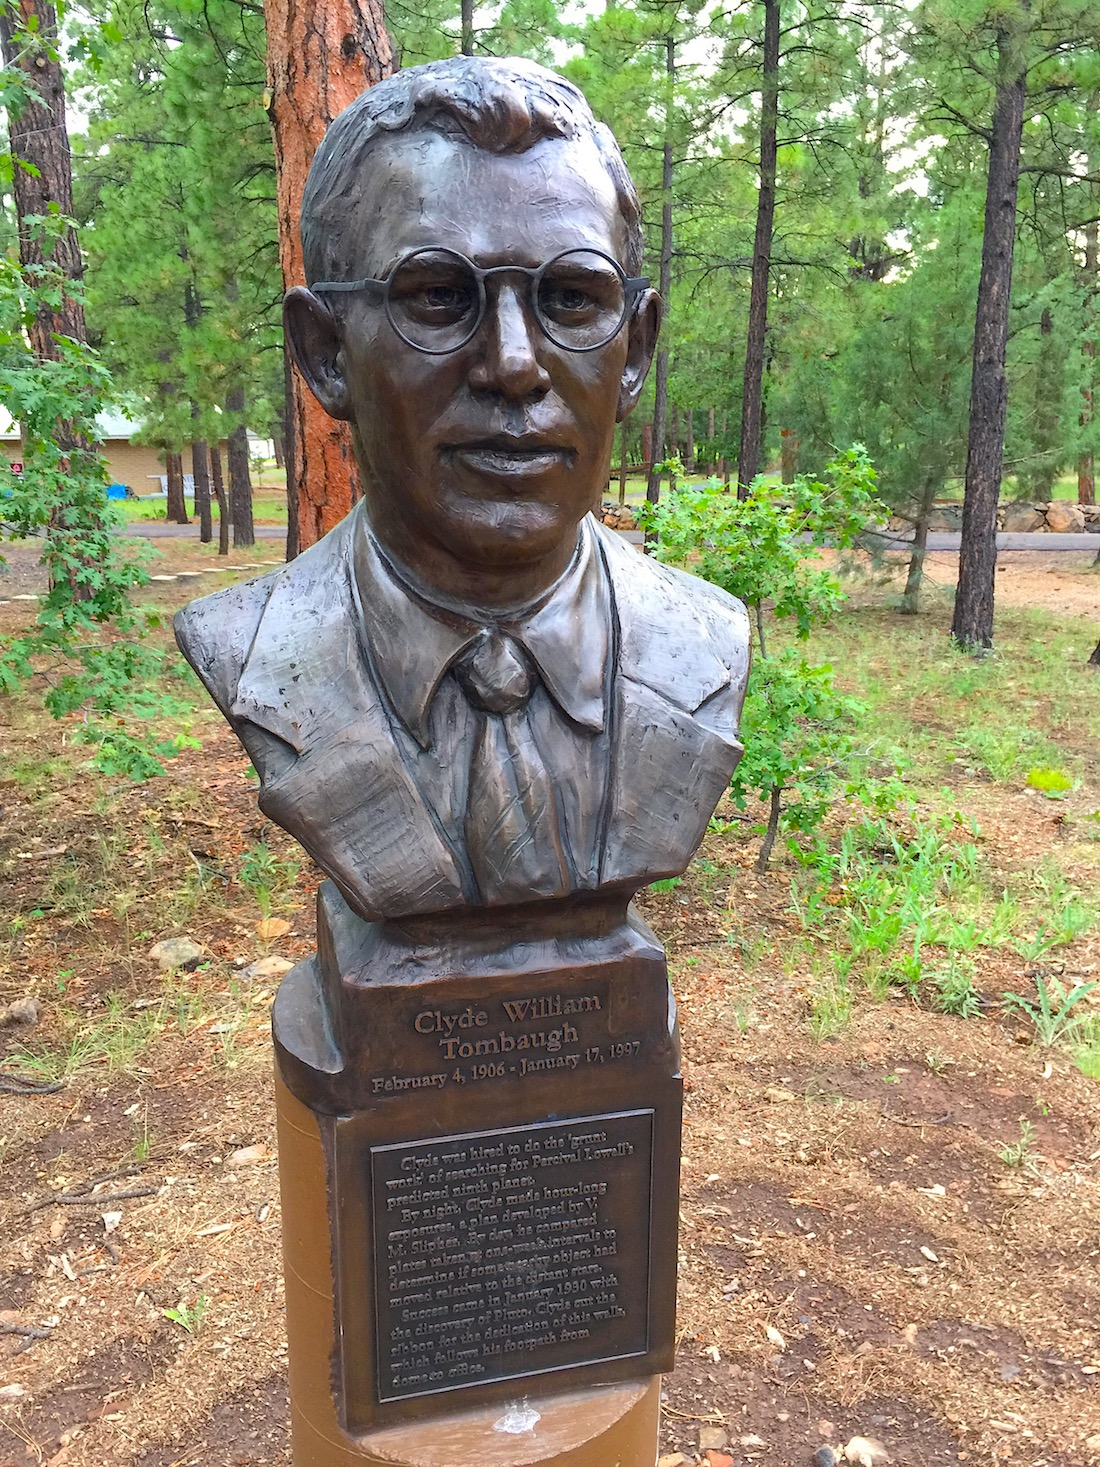 Pluto's discoverer, Clyde Tombaugh.